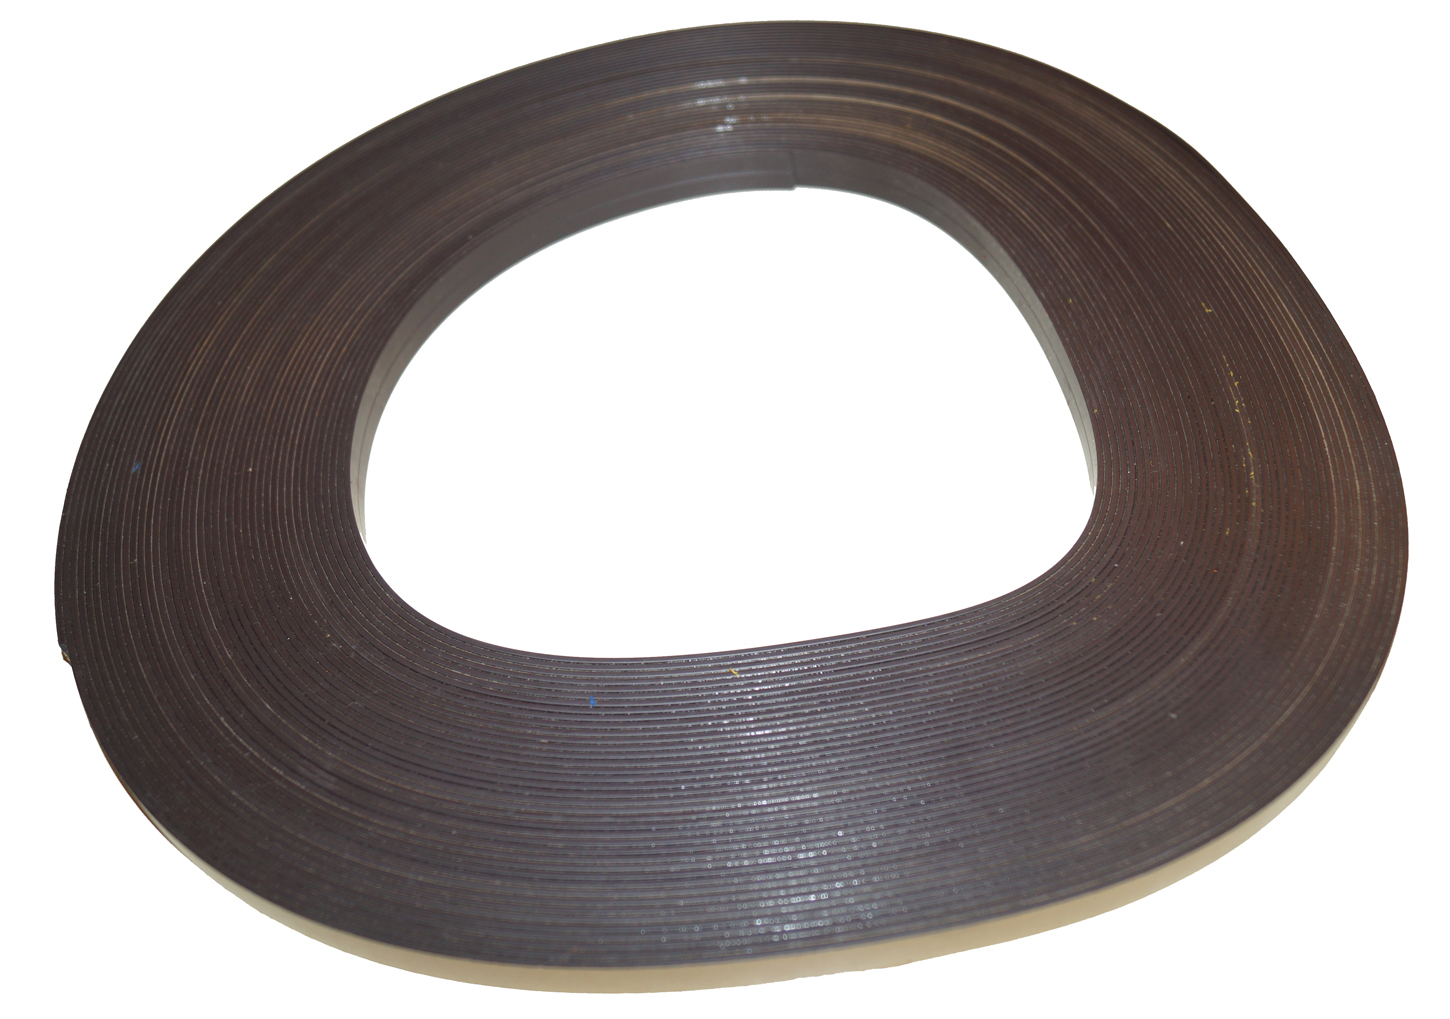 Magnetic Tape, Self-Adhesive, 1/2 Inch x 50 Ft